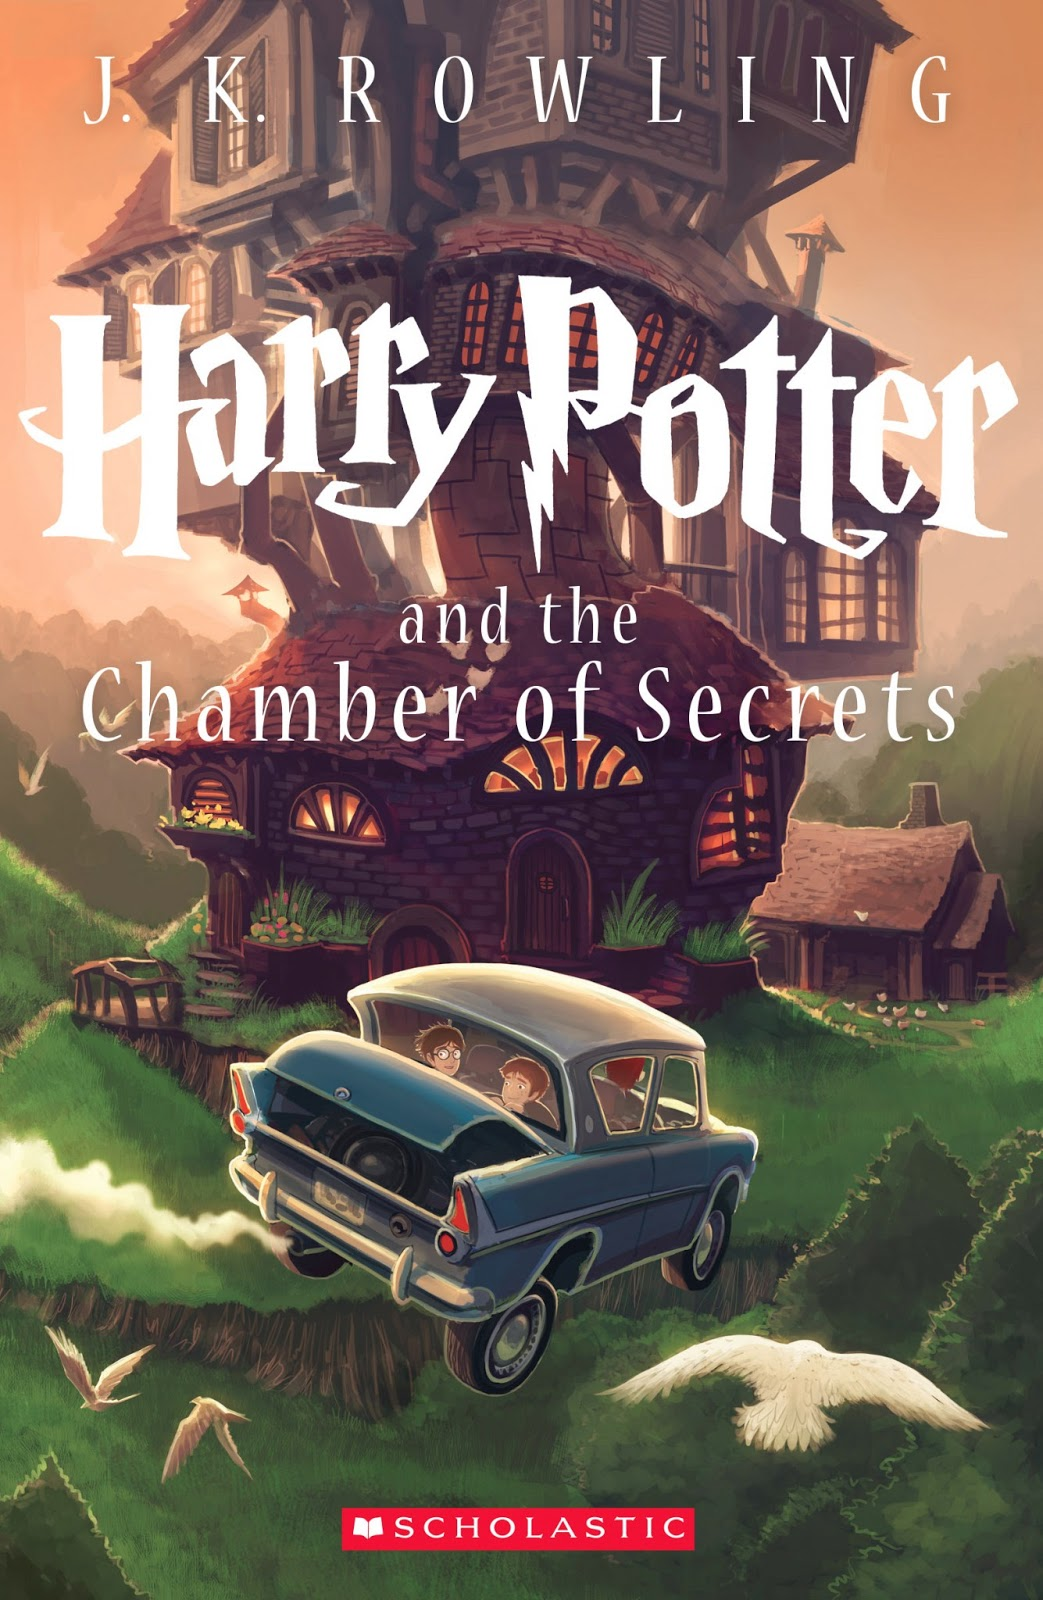 New Cover of Harry Potter and the Chamber of Secrets